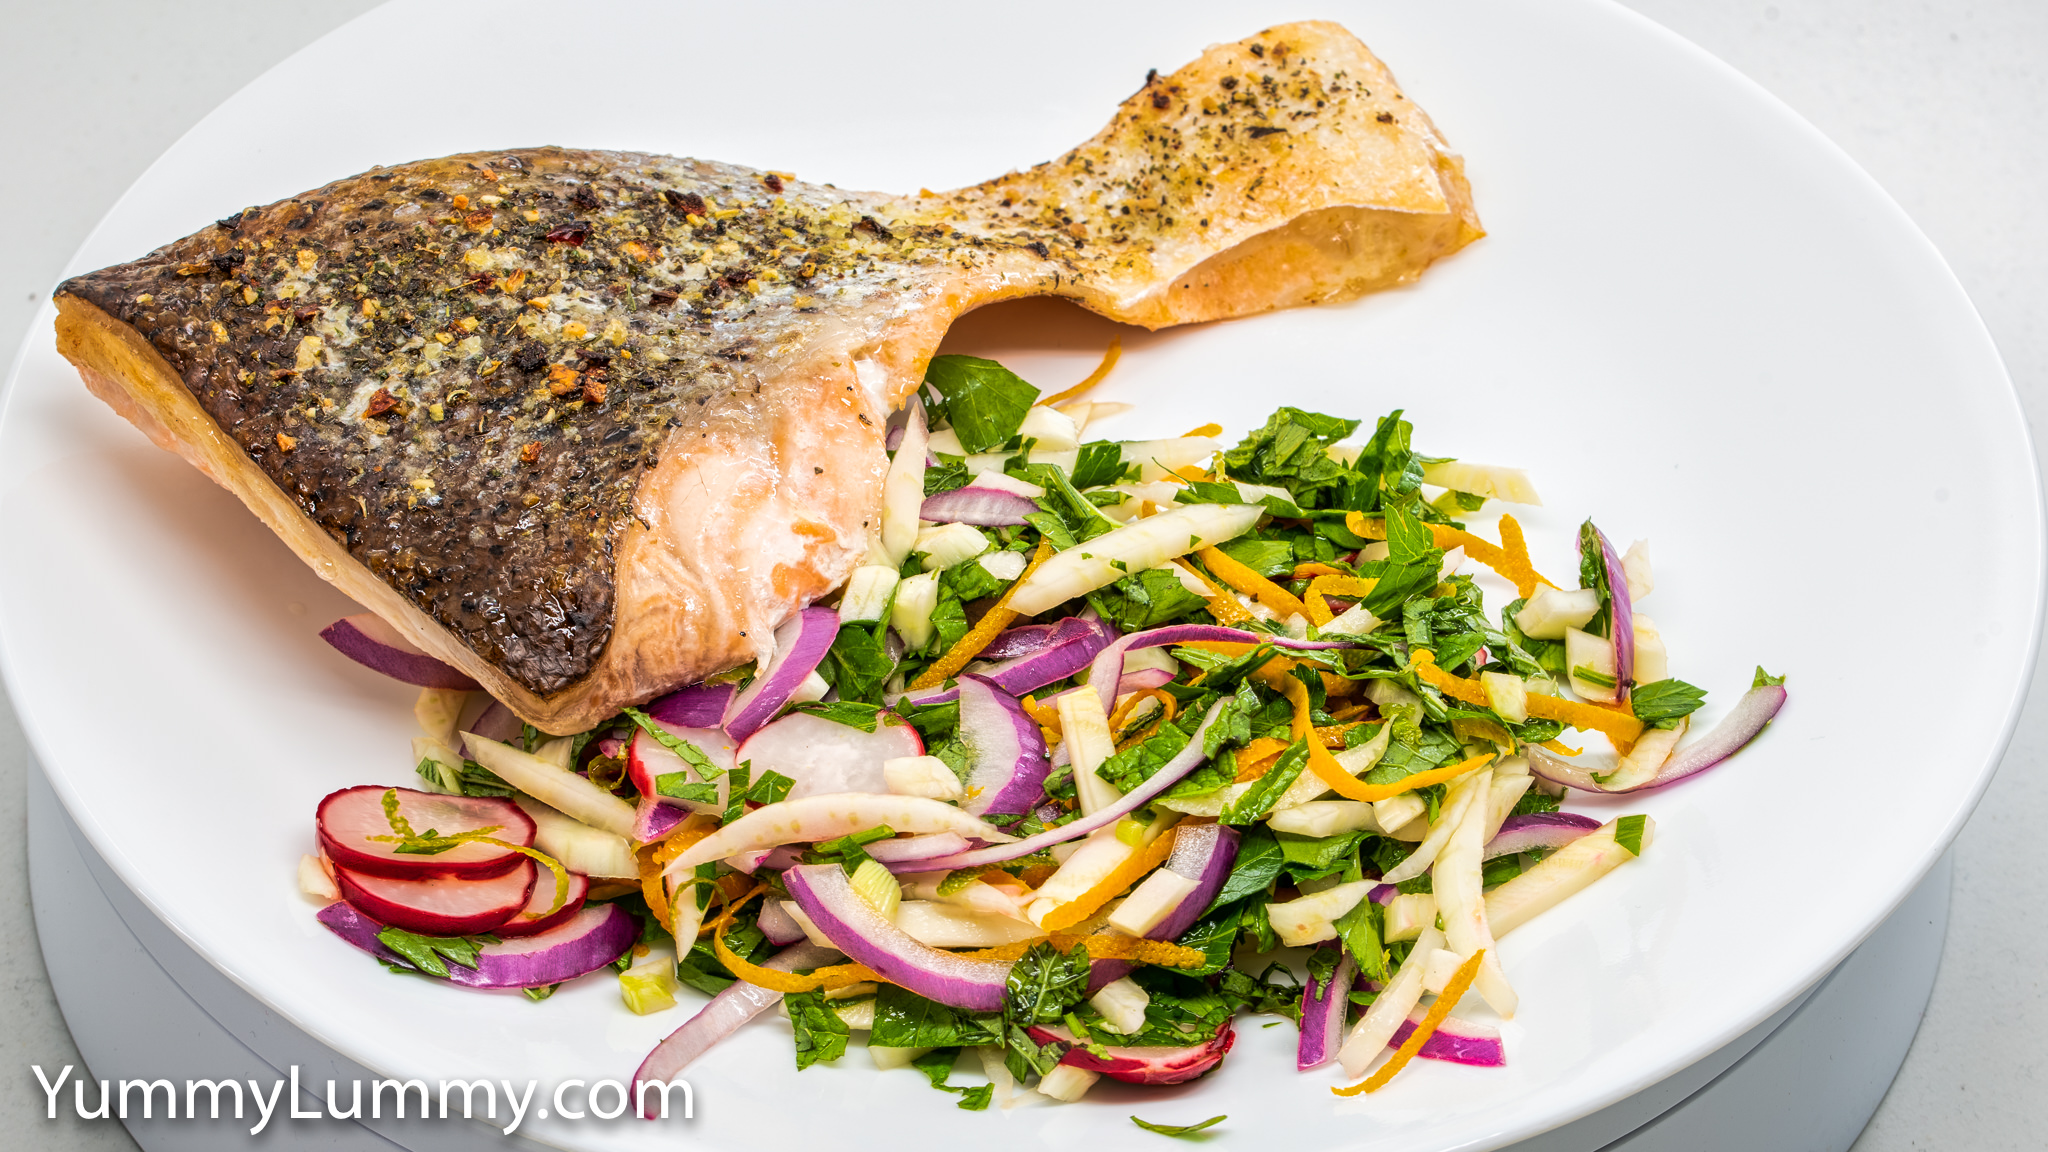 Baked salmon and pickled radish, fennel, and red onion. Gary Lum.